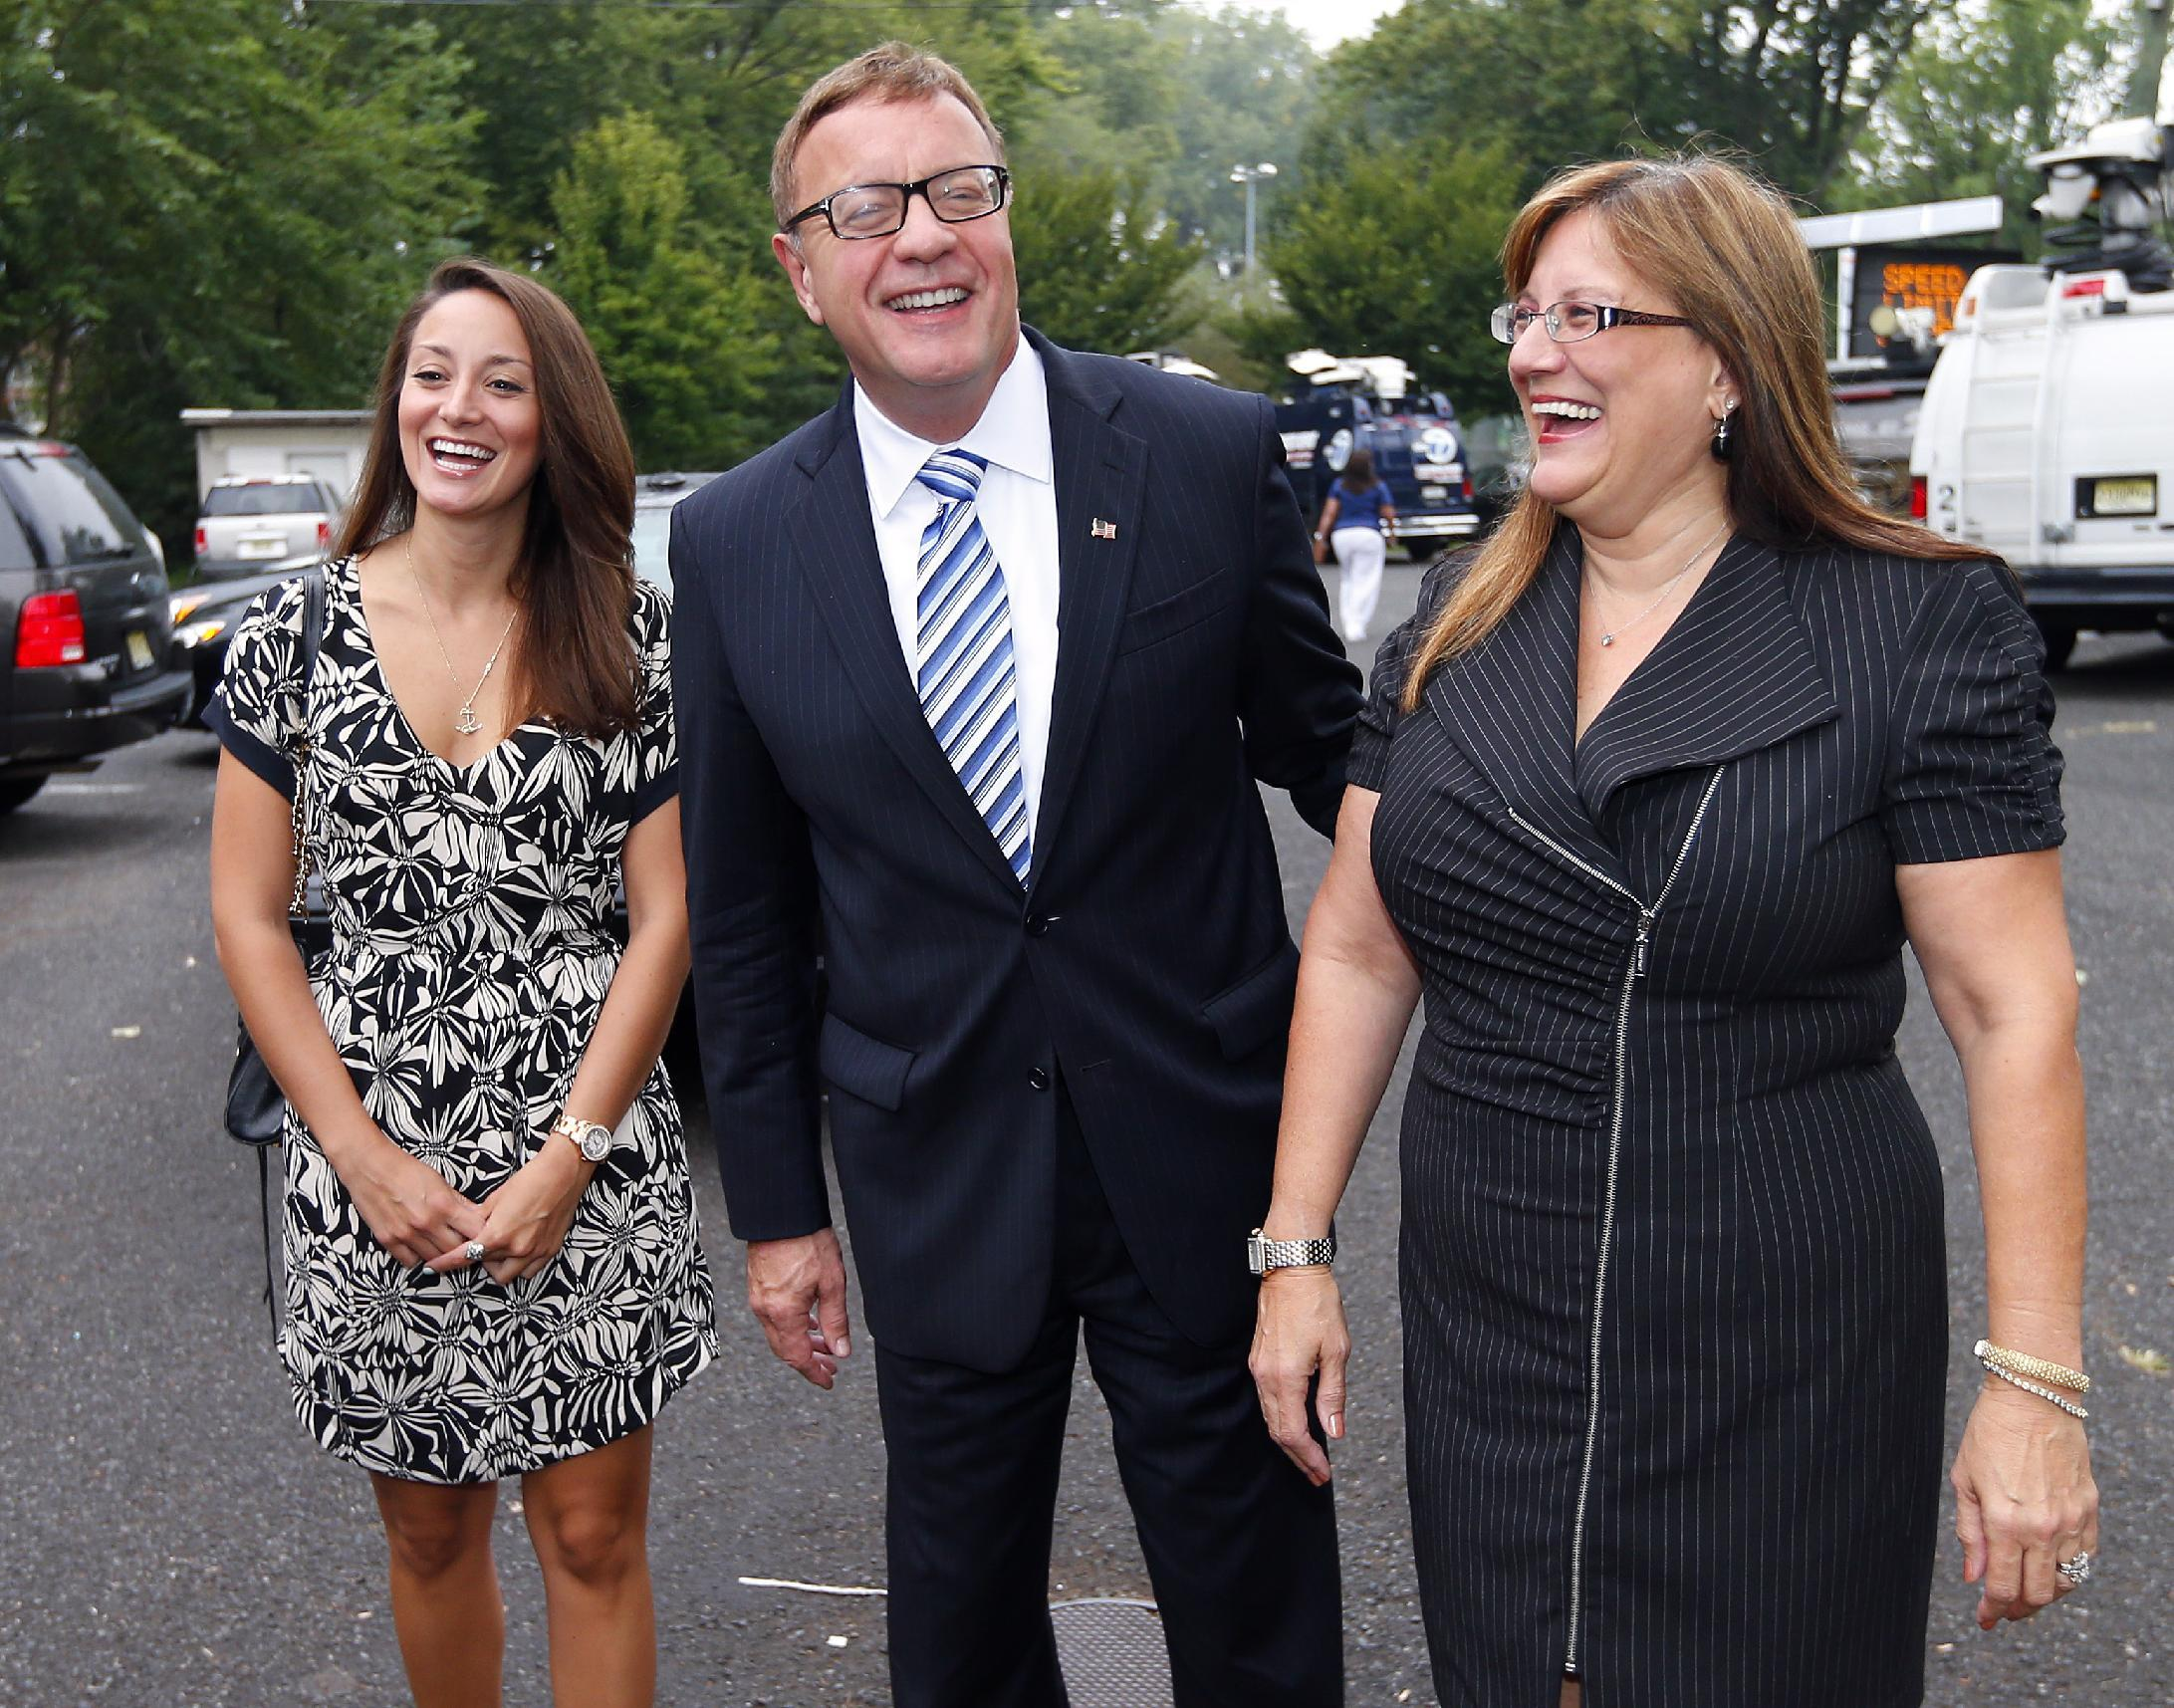 Republican U.S. Senate candidate Steve Lonegan arrives at the Bogota Recreation Center to vote with his daughter Brooke, left, and wife, Lorraine, in the special election primary in Bogota, N.J., Tuesday, Aug. 13, 2013. (AP Photo/Rich Schultz)